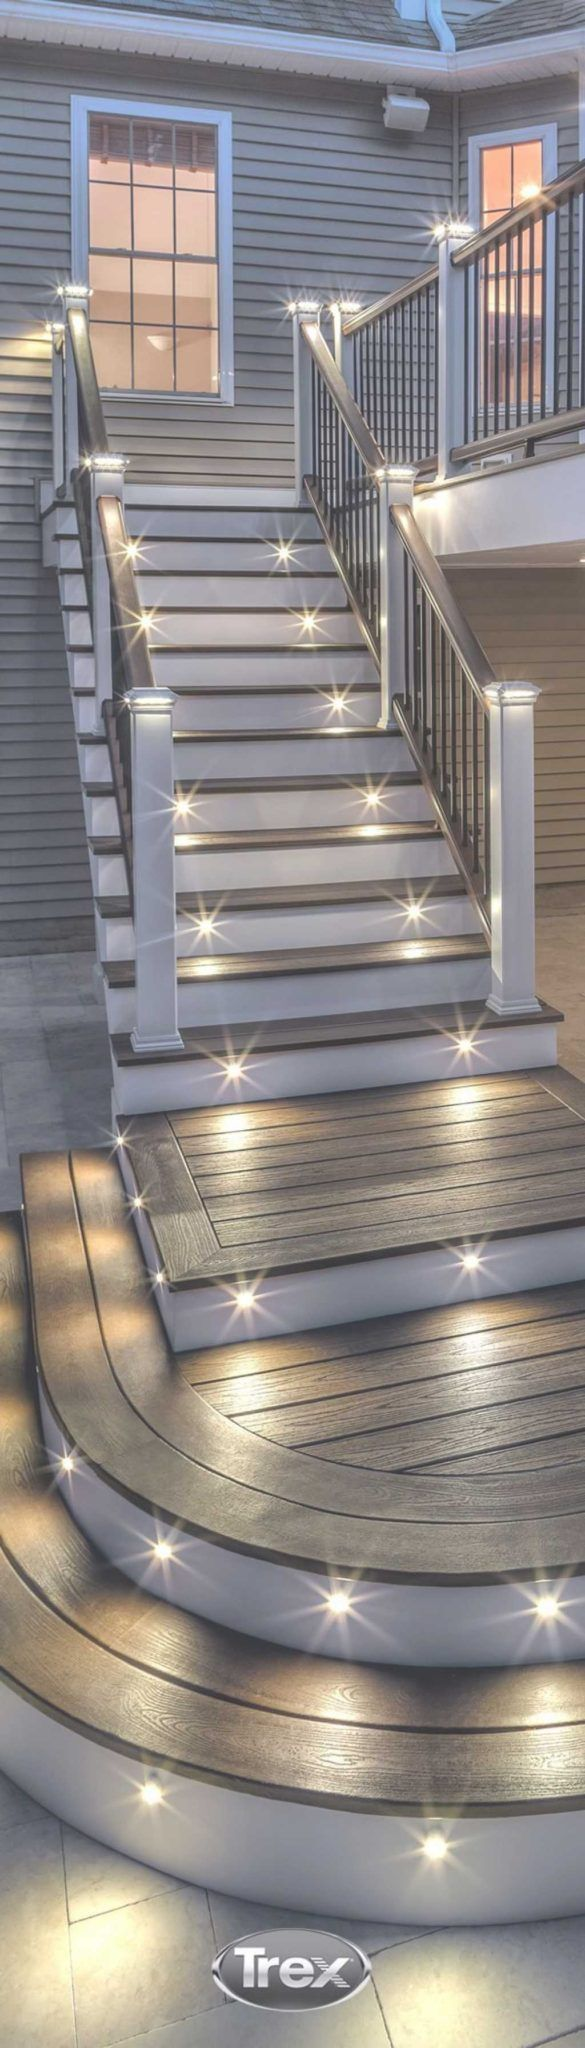 Elegant Exterior Stairwell Decoration For Your Home | Delightful for you to the website, in this particular occasion I will teach you regarding Elegan...